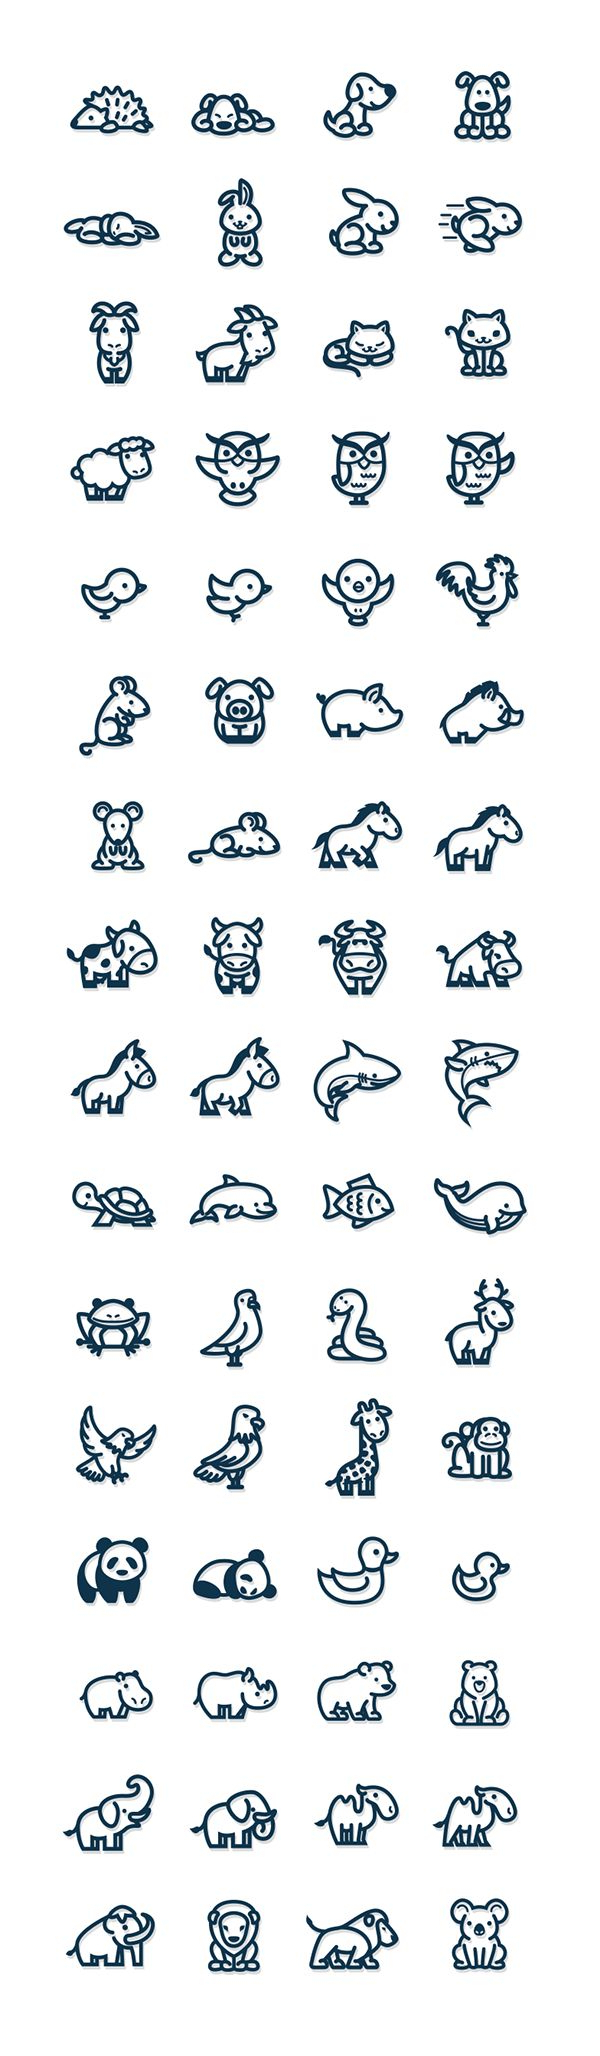 Easy Drawing Of Animals At Getdrawings Com Free For Personal Use